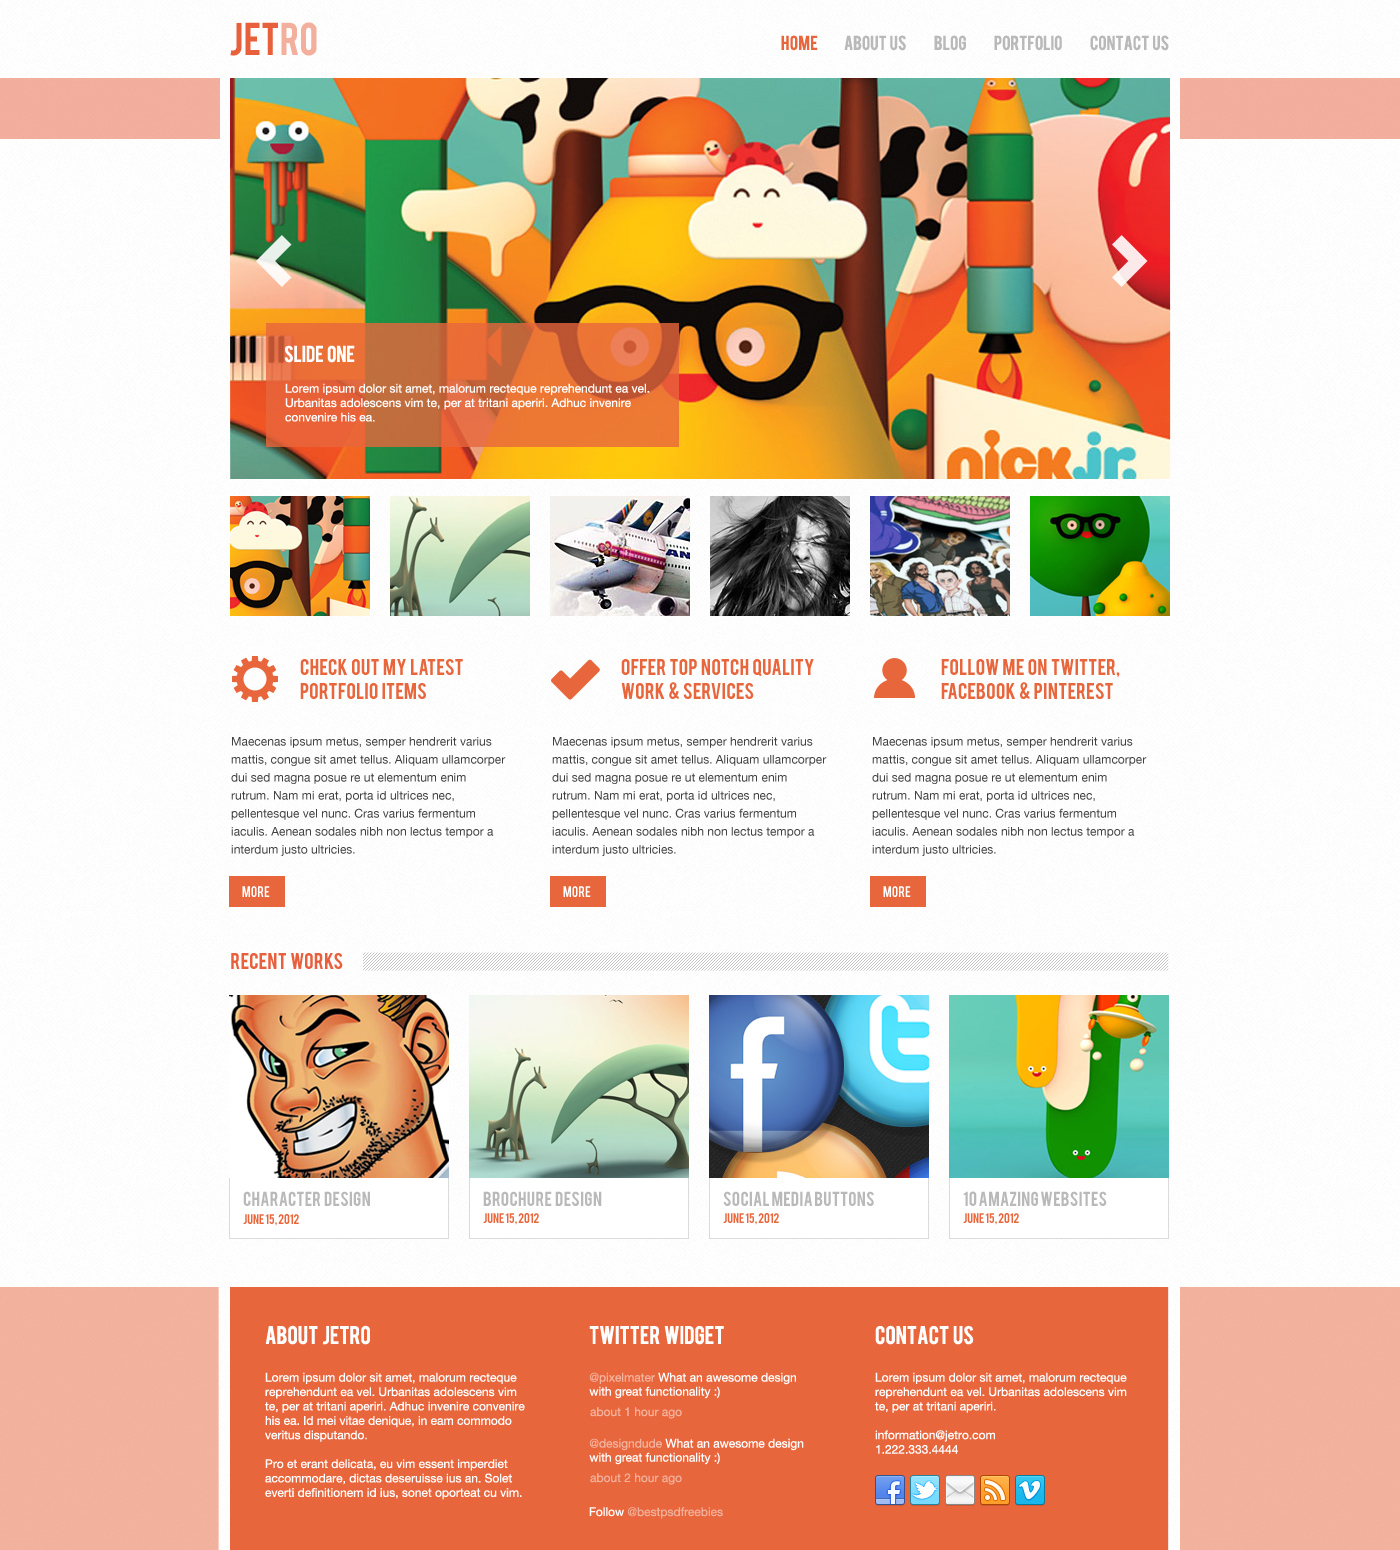 Web page design psd file — photo 1